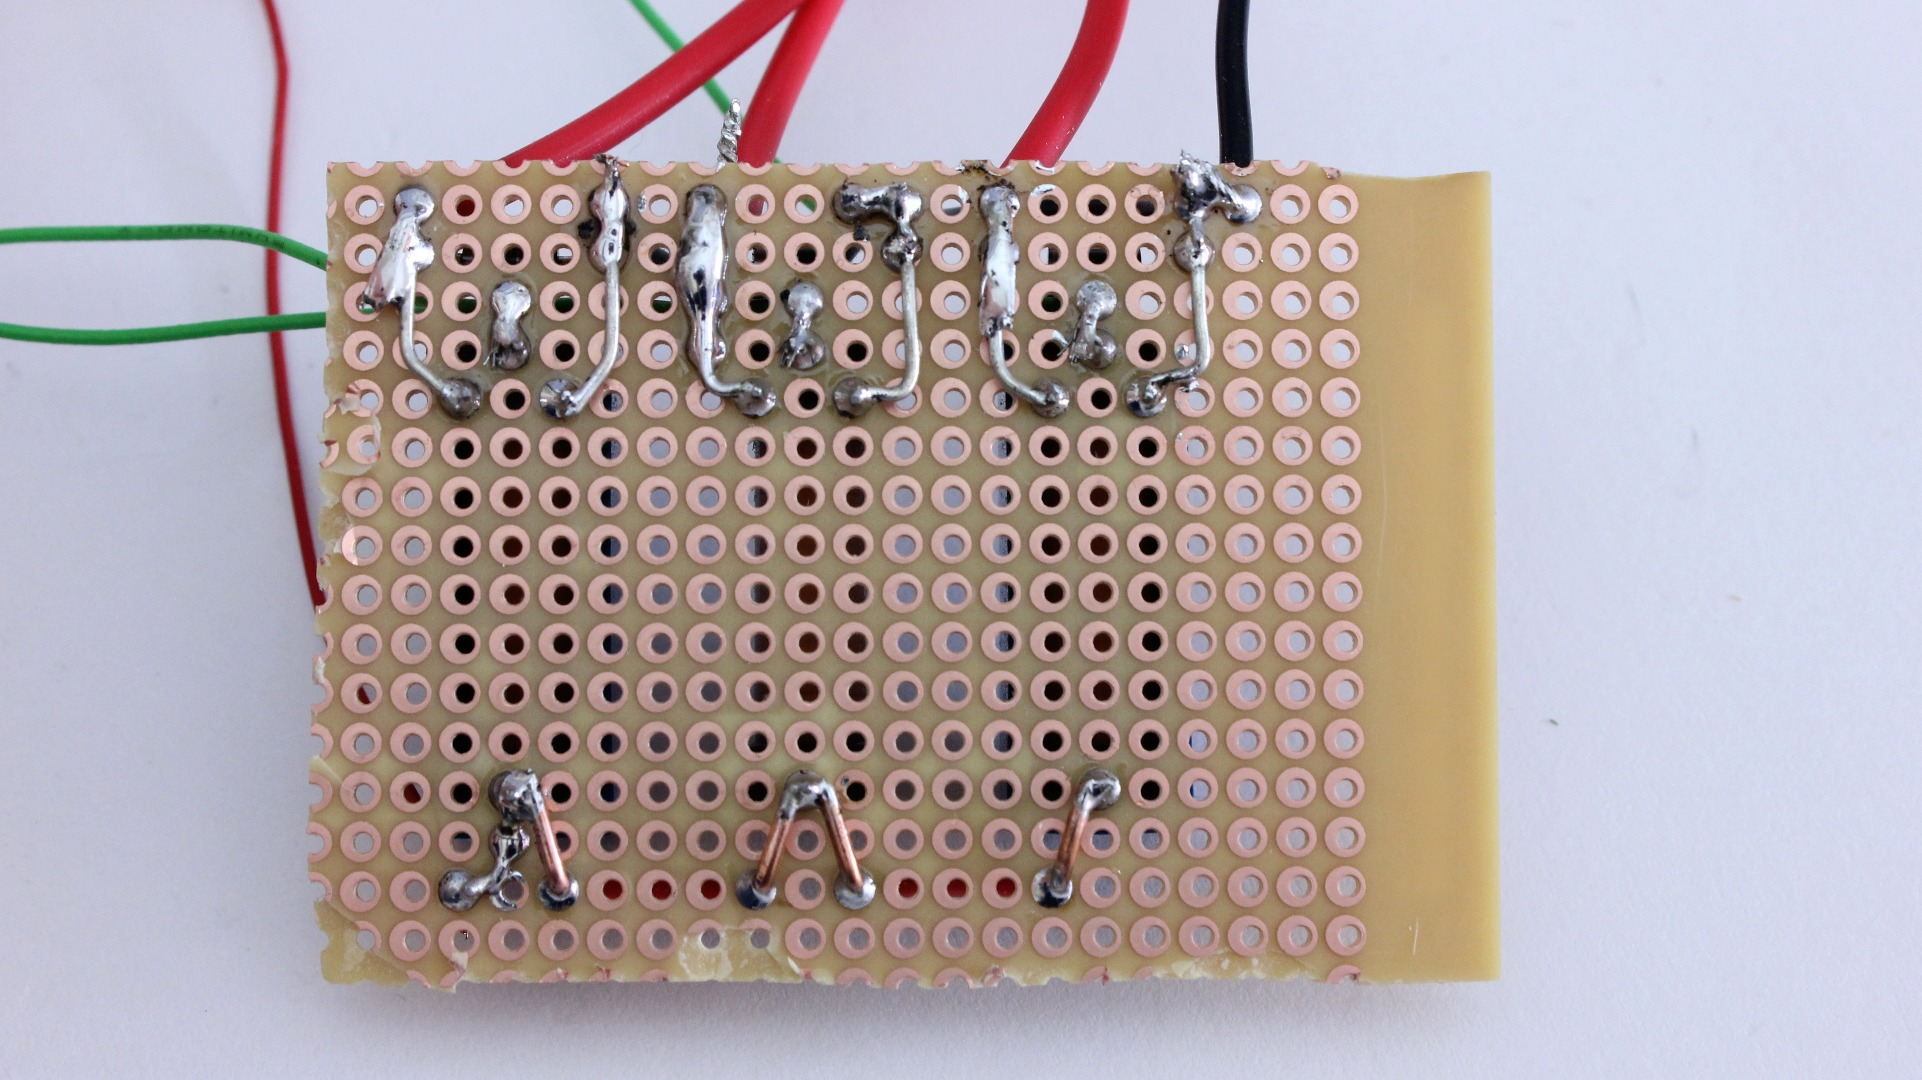 Picture of Solder the Relay Circuit Onto a Piece of Perf Board